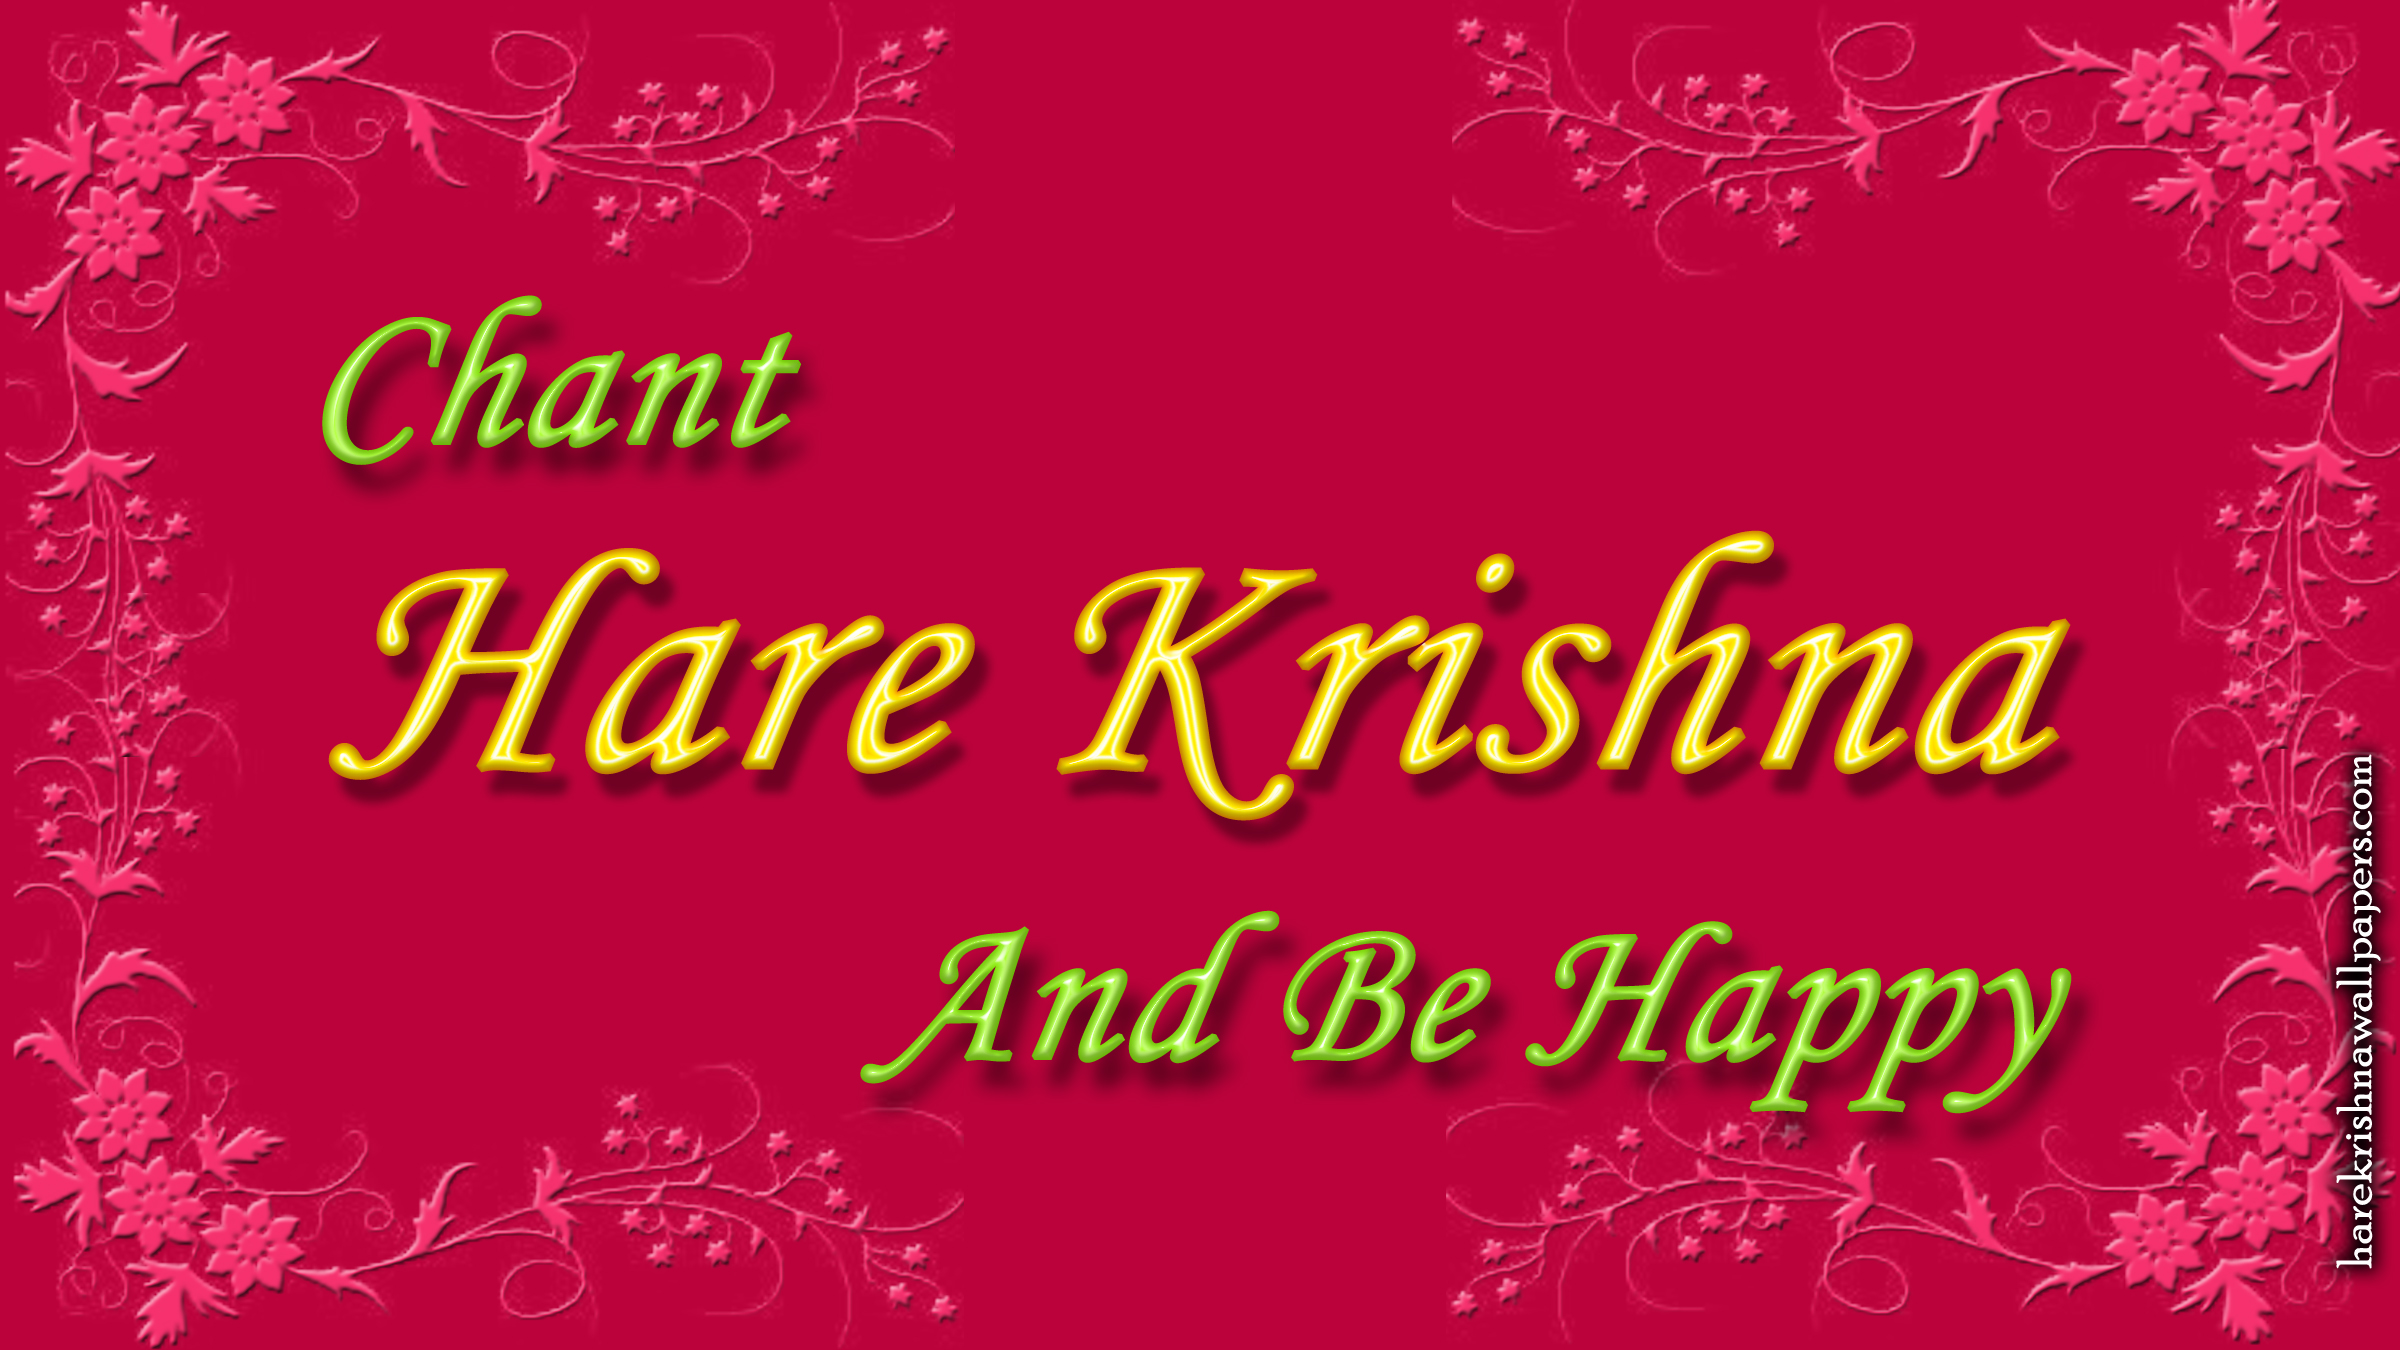 Chant Hare Krishna and be happy Wallpaper (008) Size 2400x1350 Download